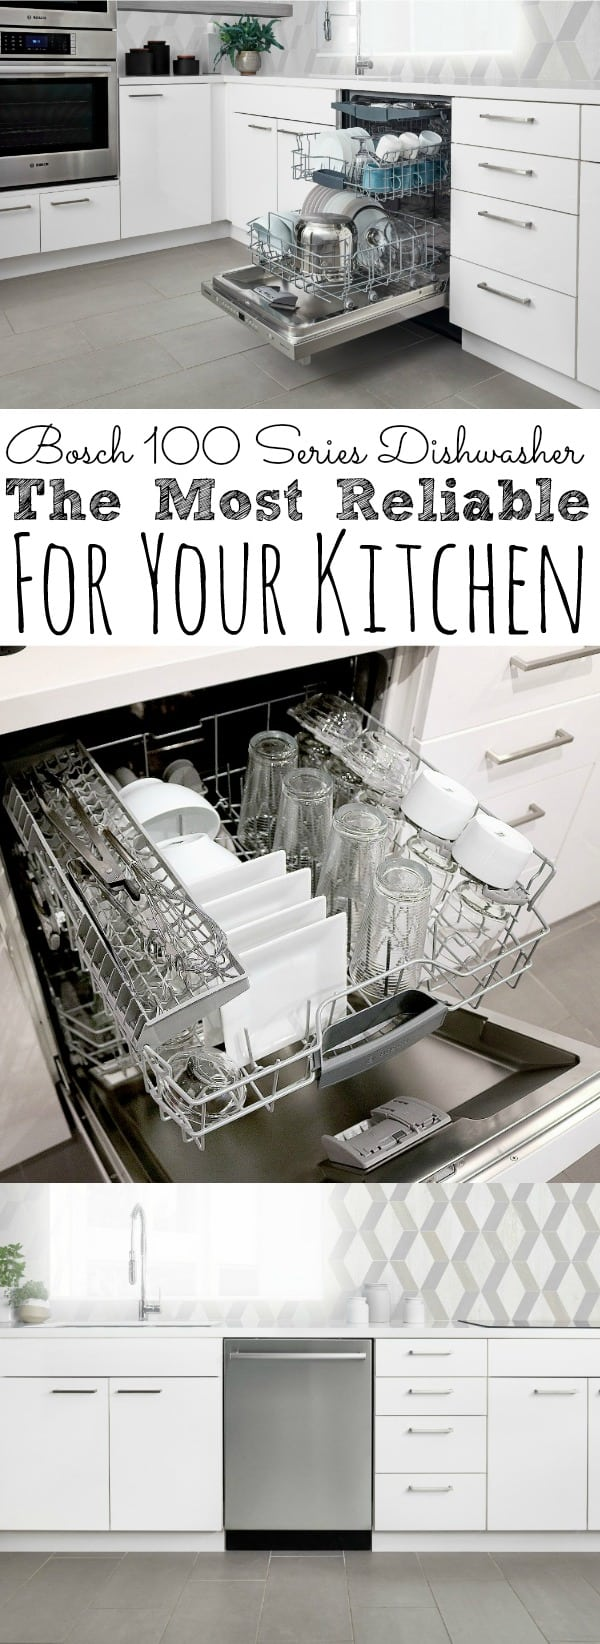 Bosch 100 Series Dishwasher The Most Reliable For Your Kitchen